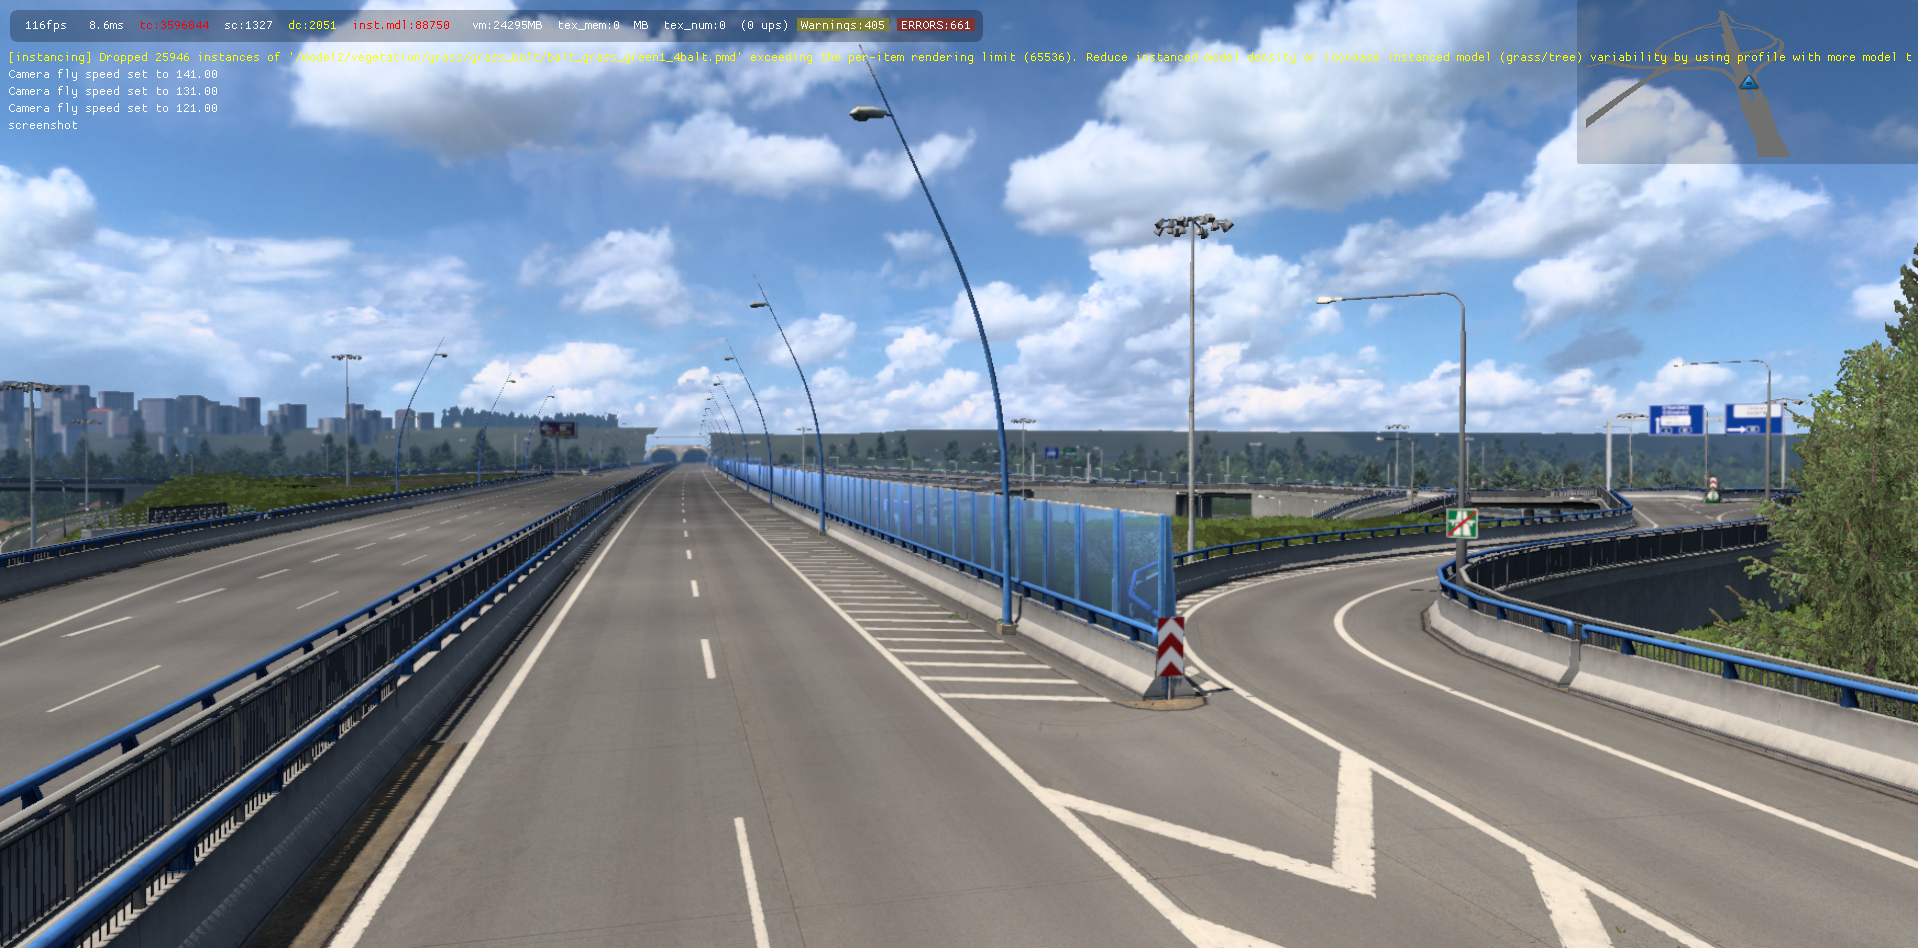 ets2_20210730_000524_00.png